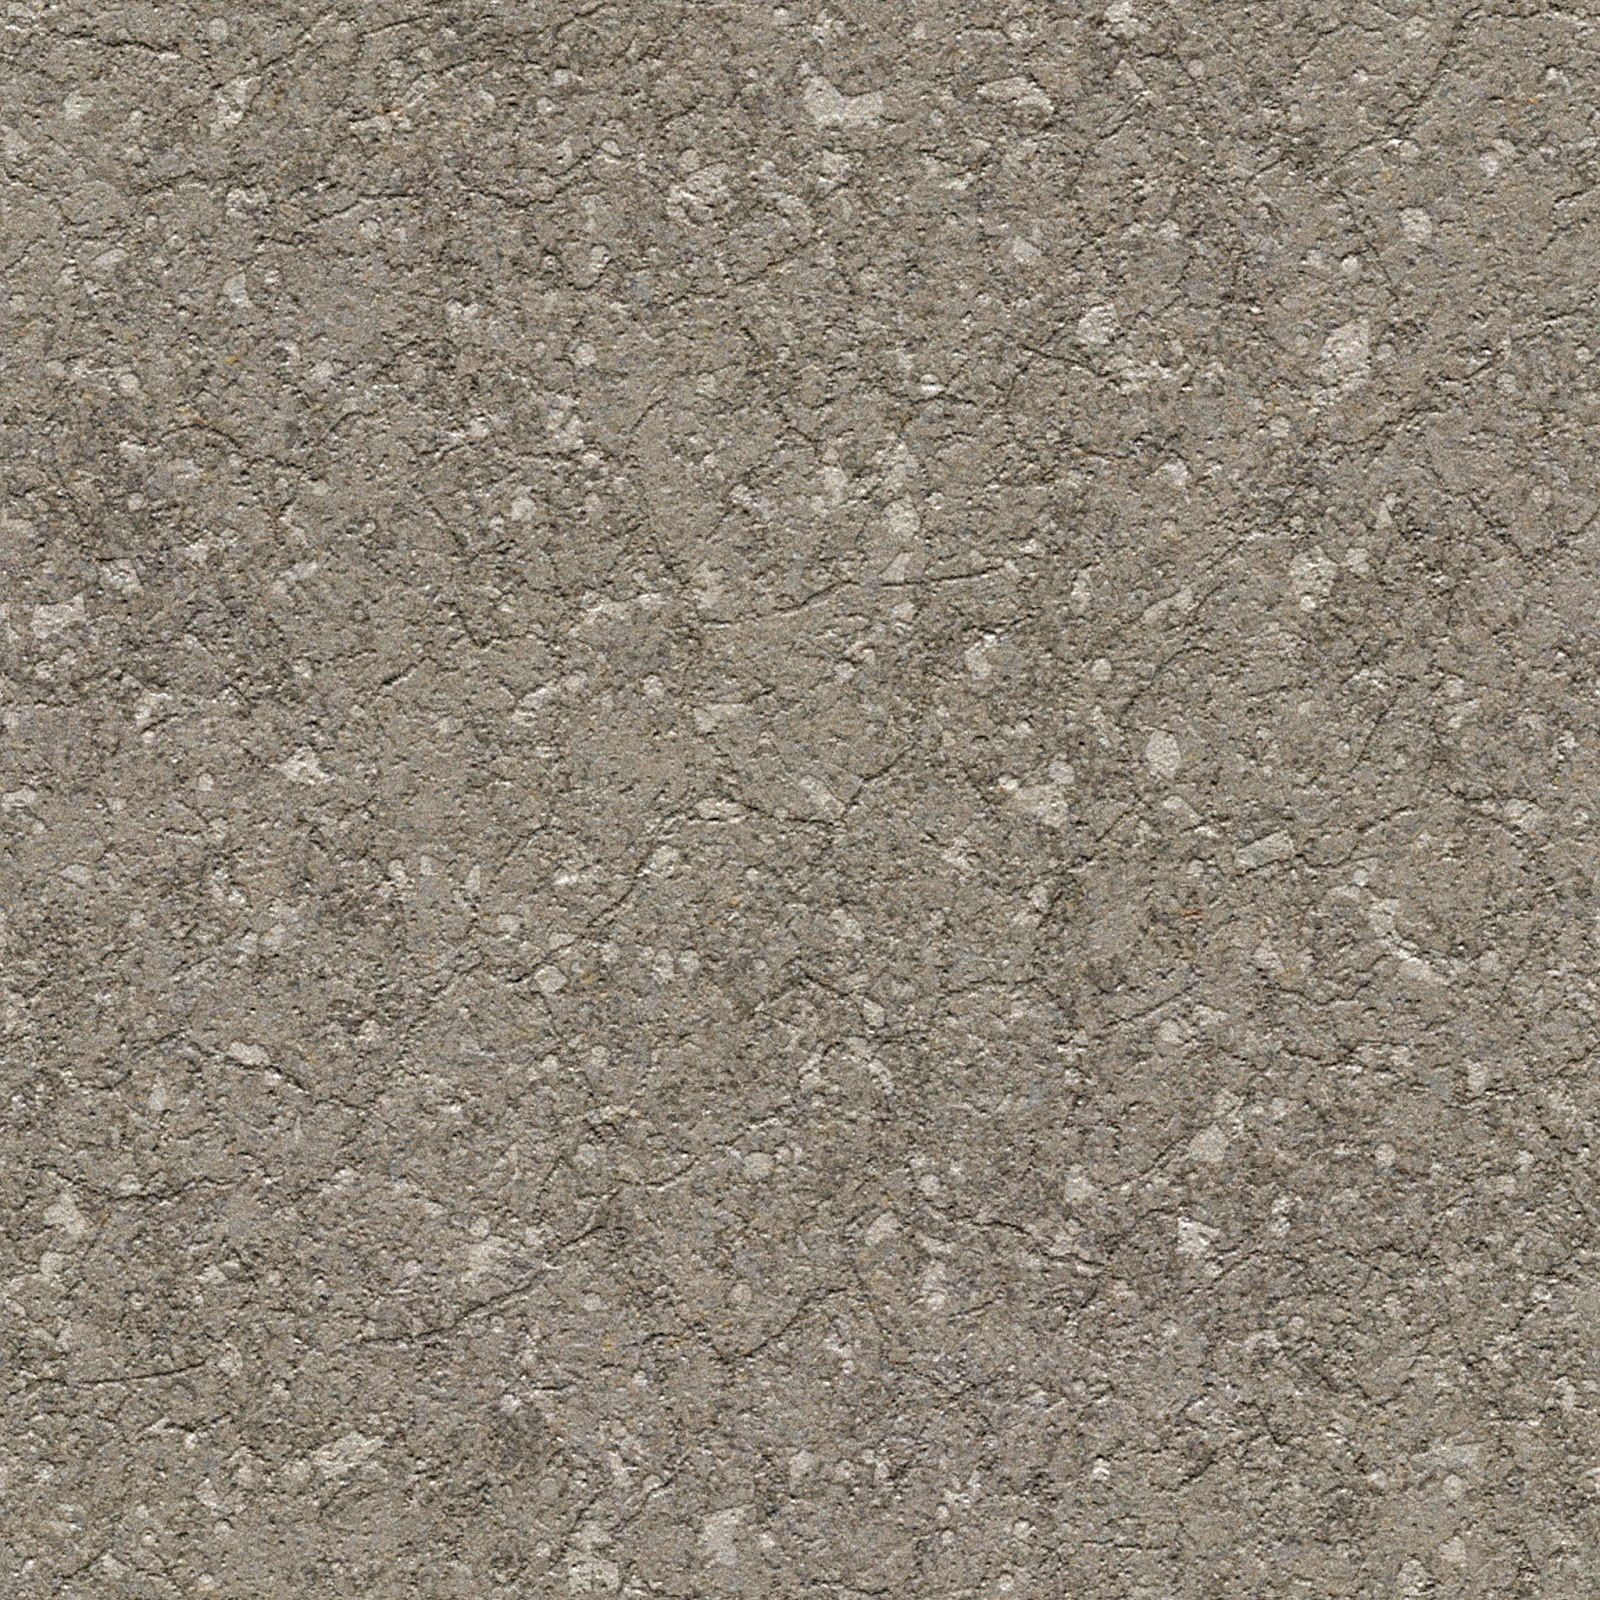 Concrete_white patterns_cracks_wall_seamless_tileable_texture